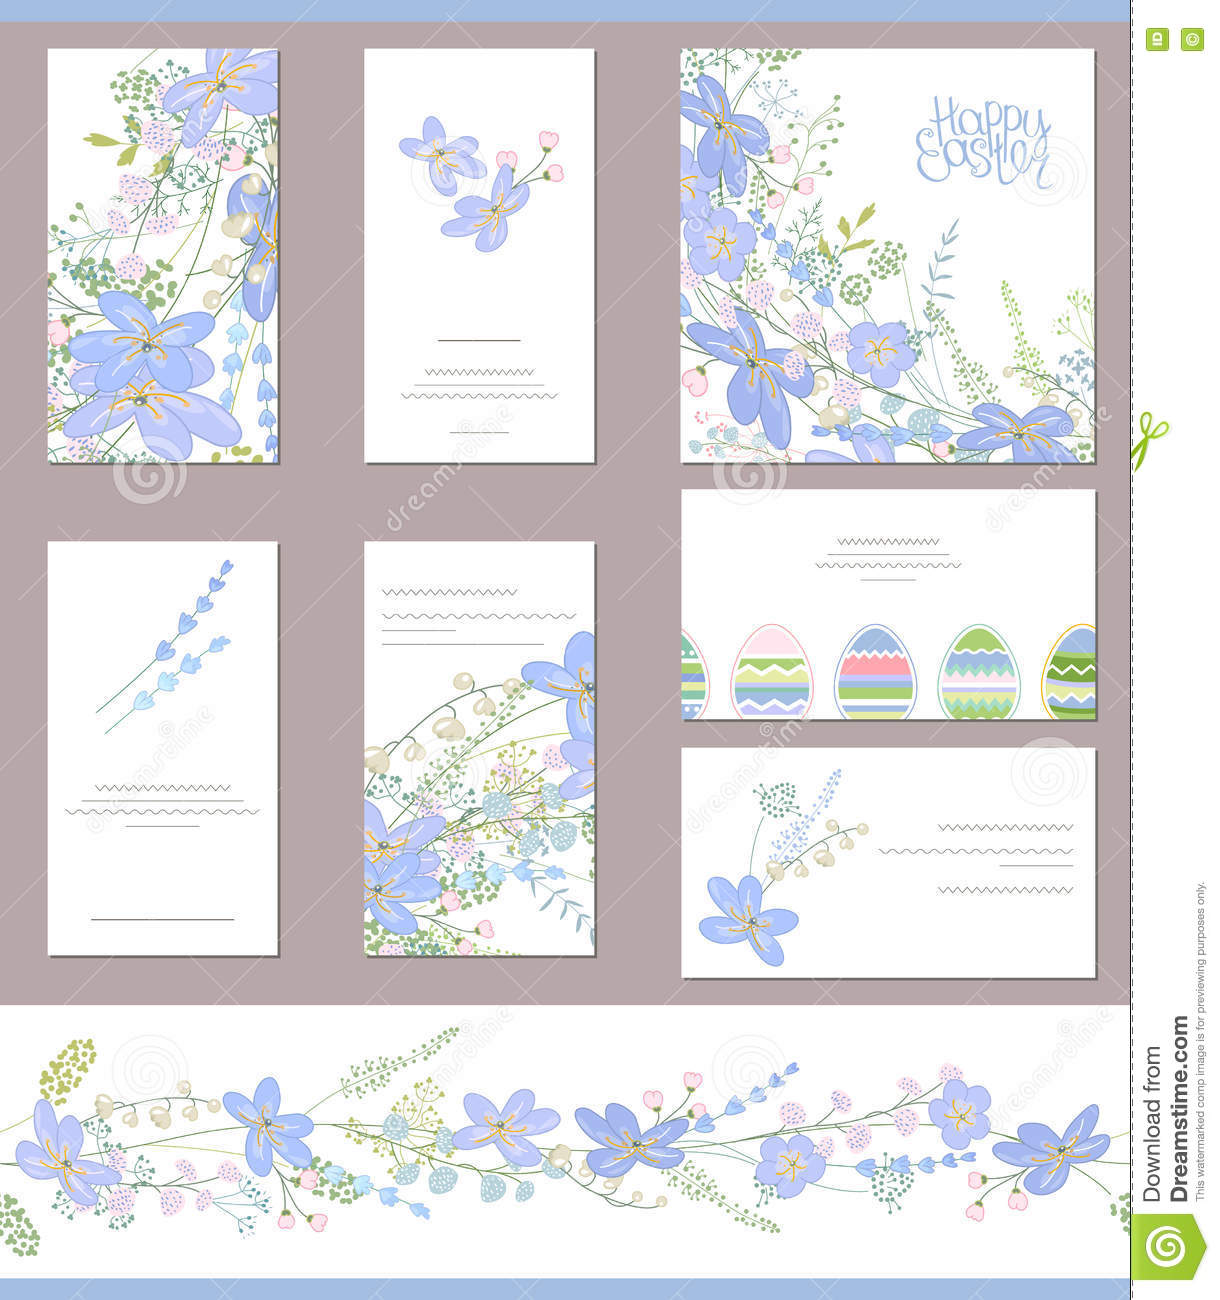 floral spring templates with cute blue flowers stock illustration